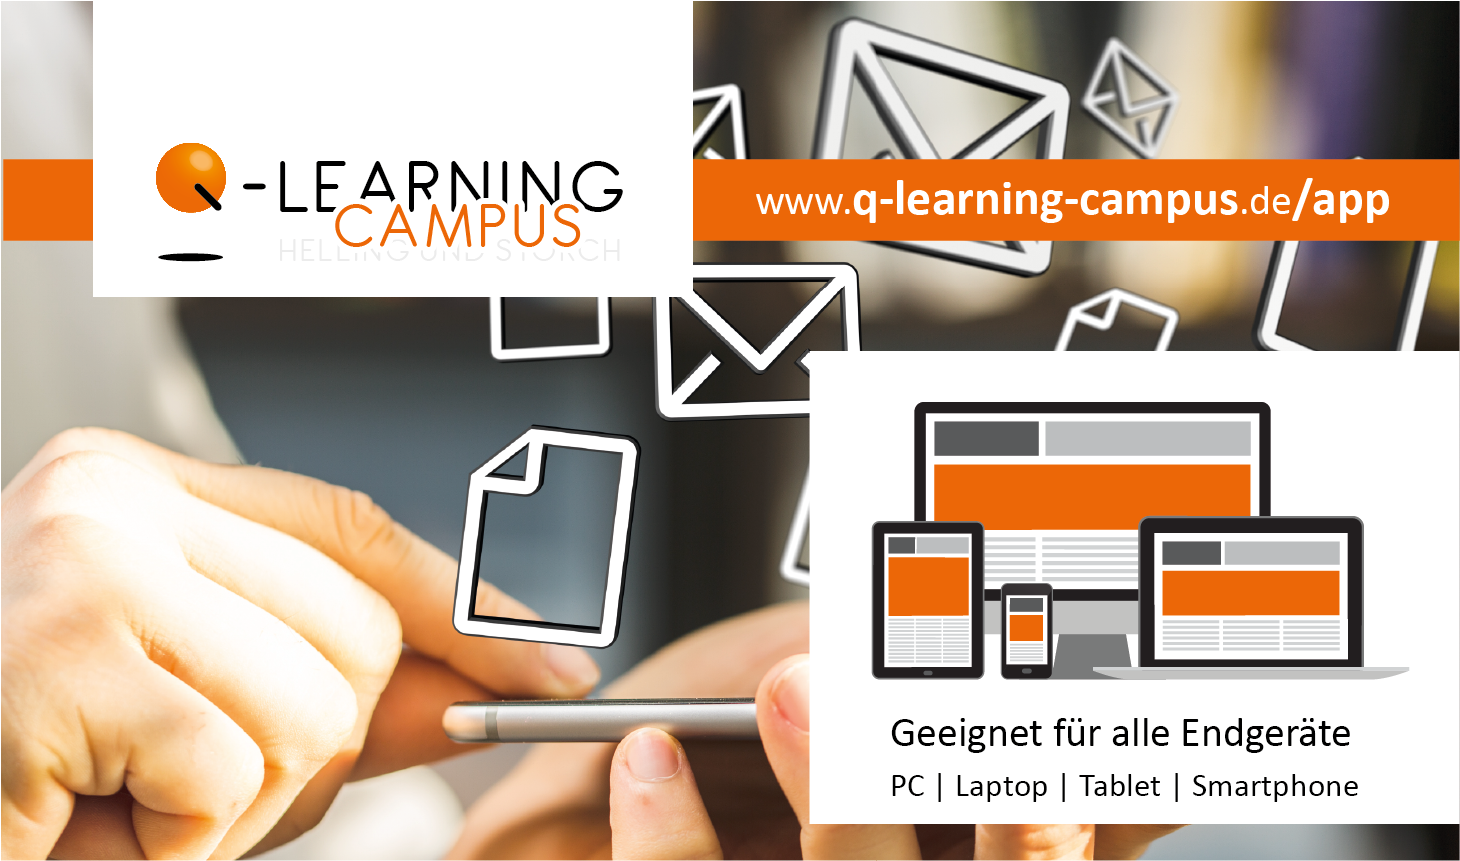 Q-LEARNING Campus App